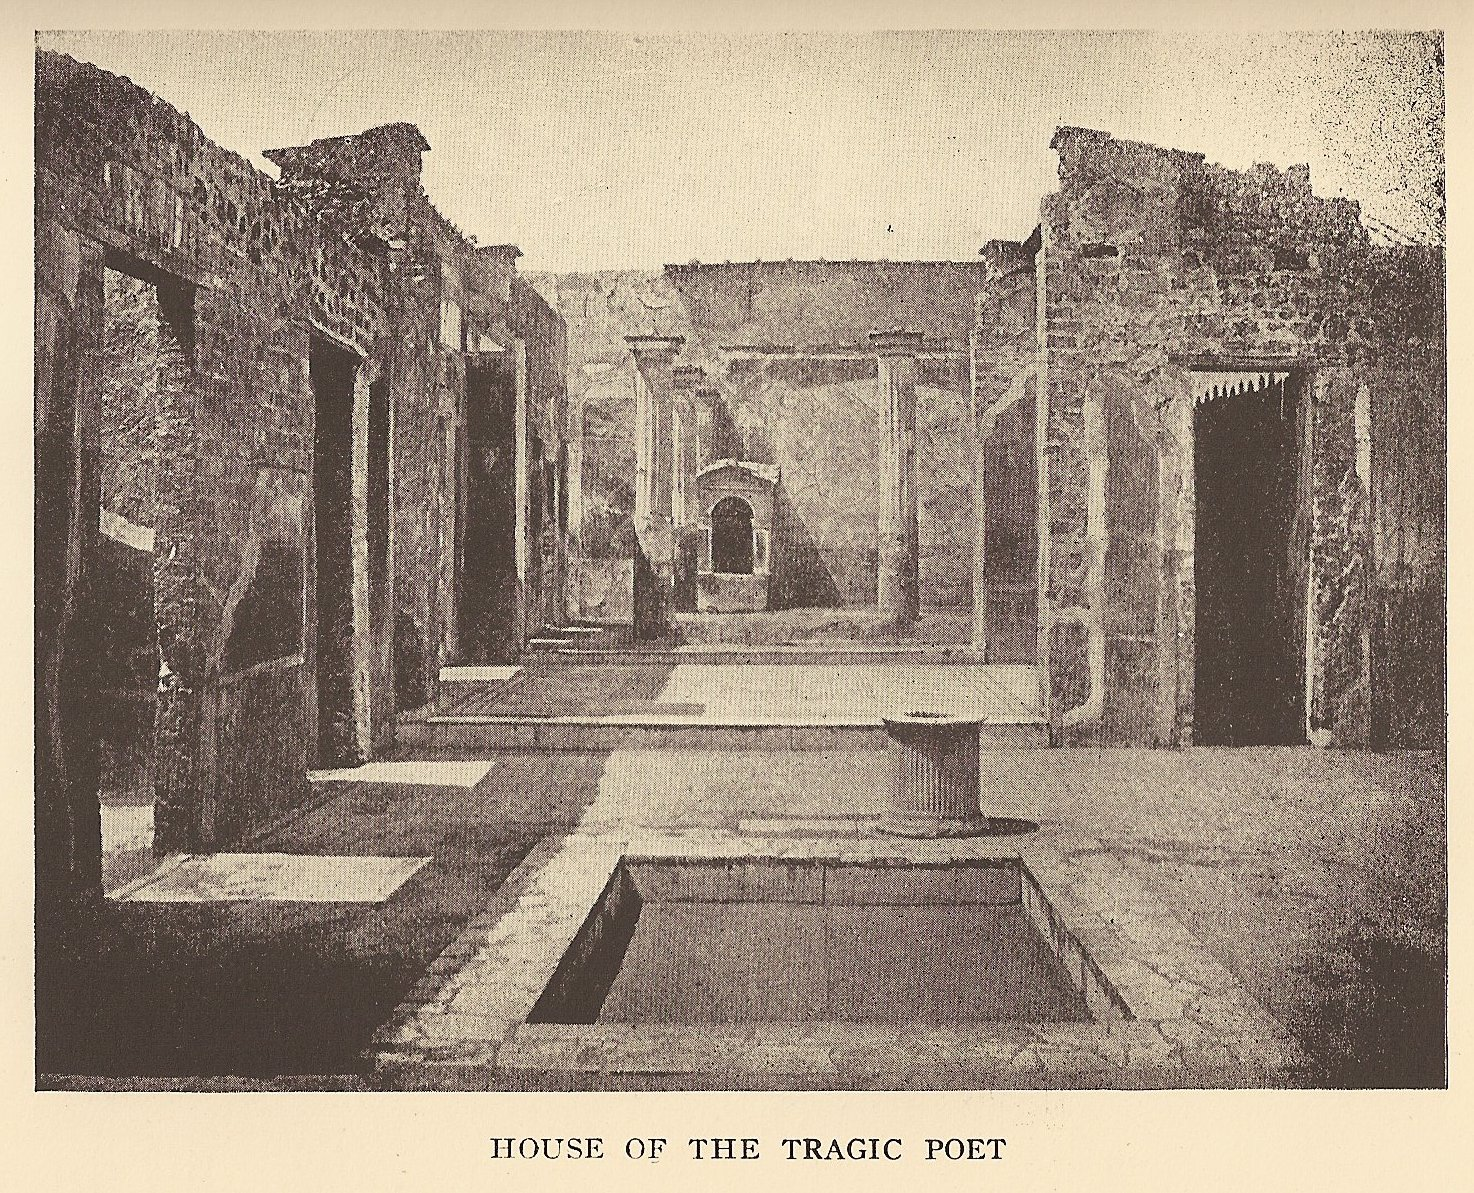 House of the tragic poet